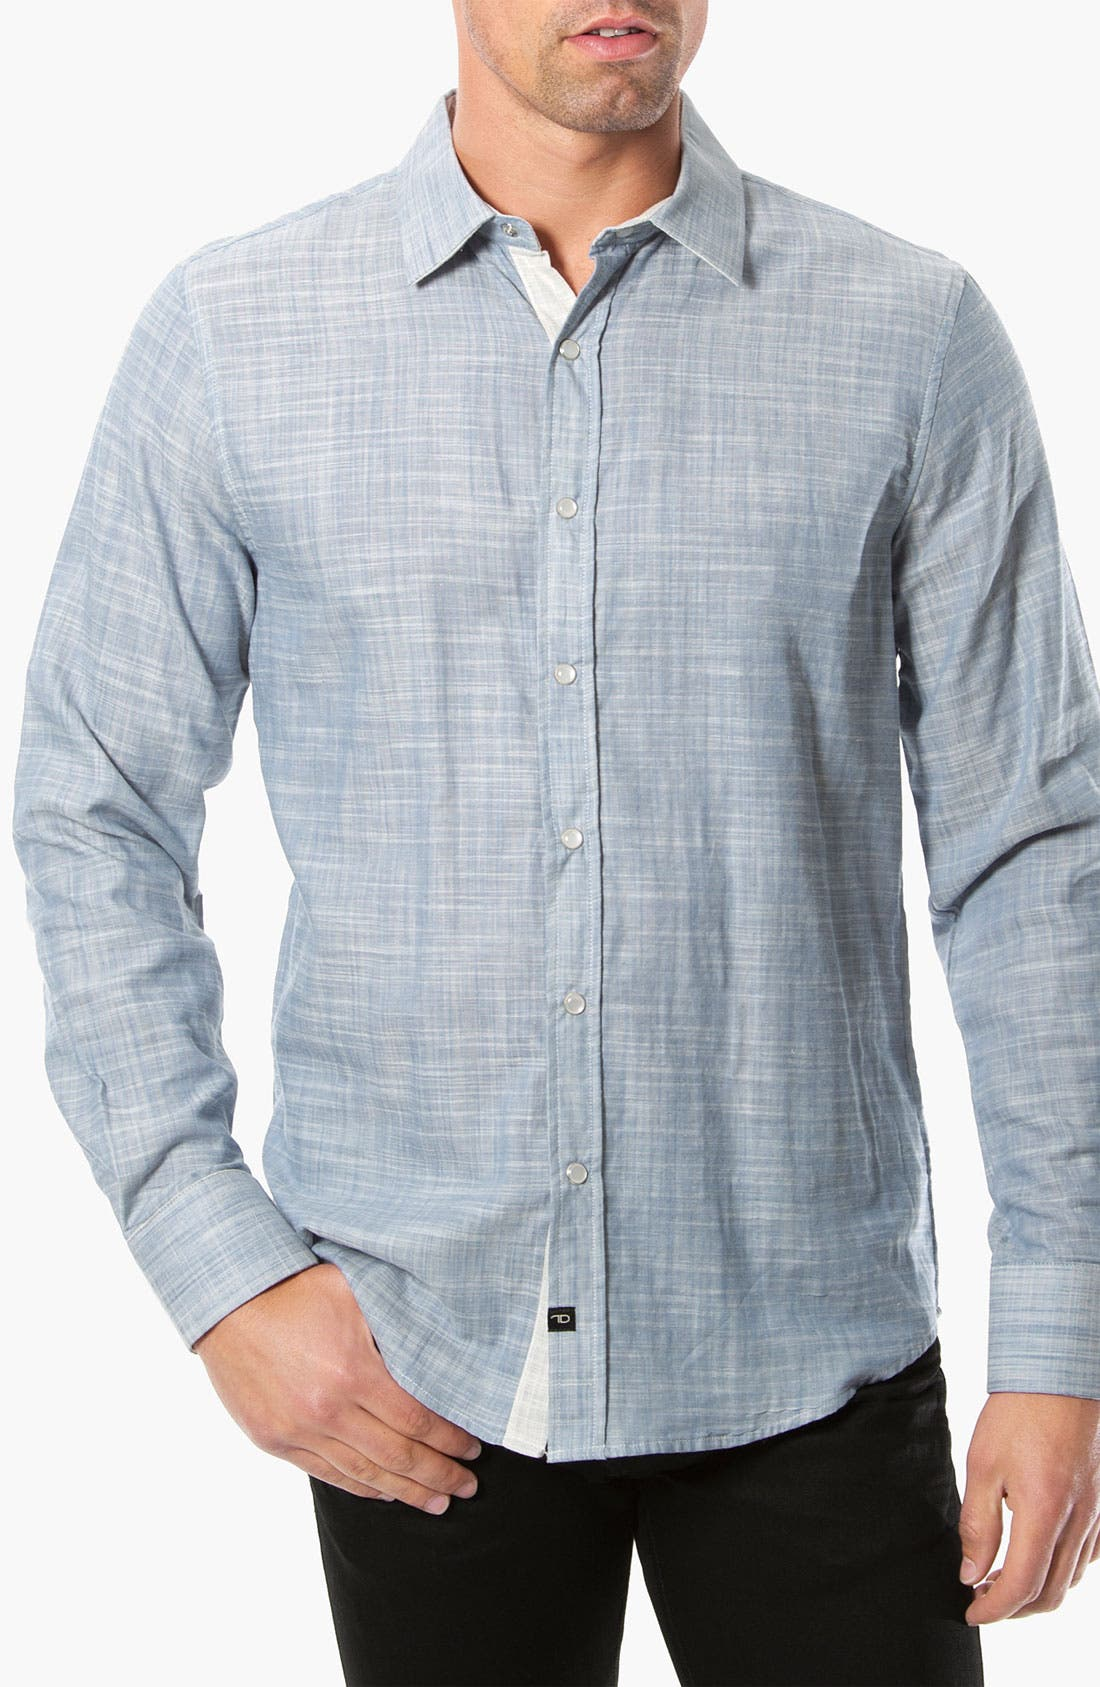 Alternate Image 1 Selected - 7 Diamonds 'The Movement' Woven Sport Shirt